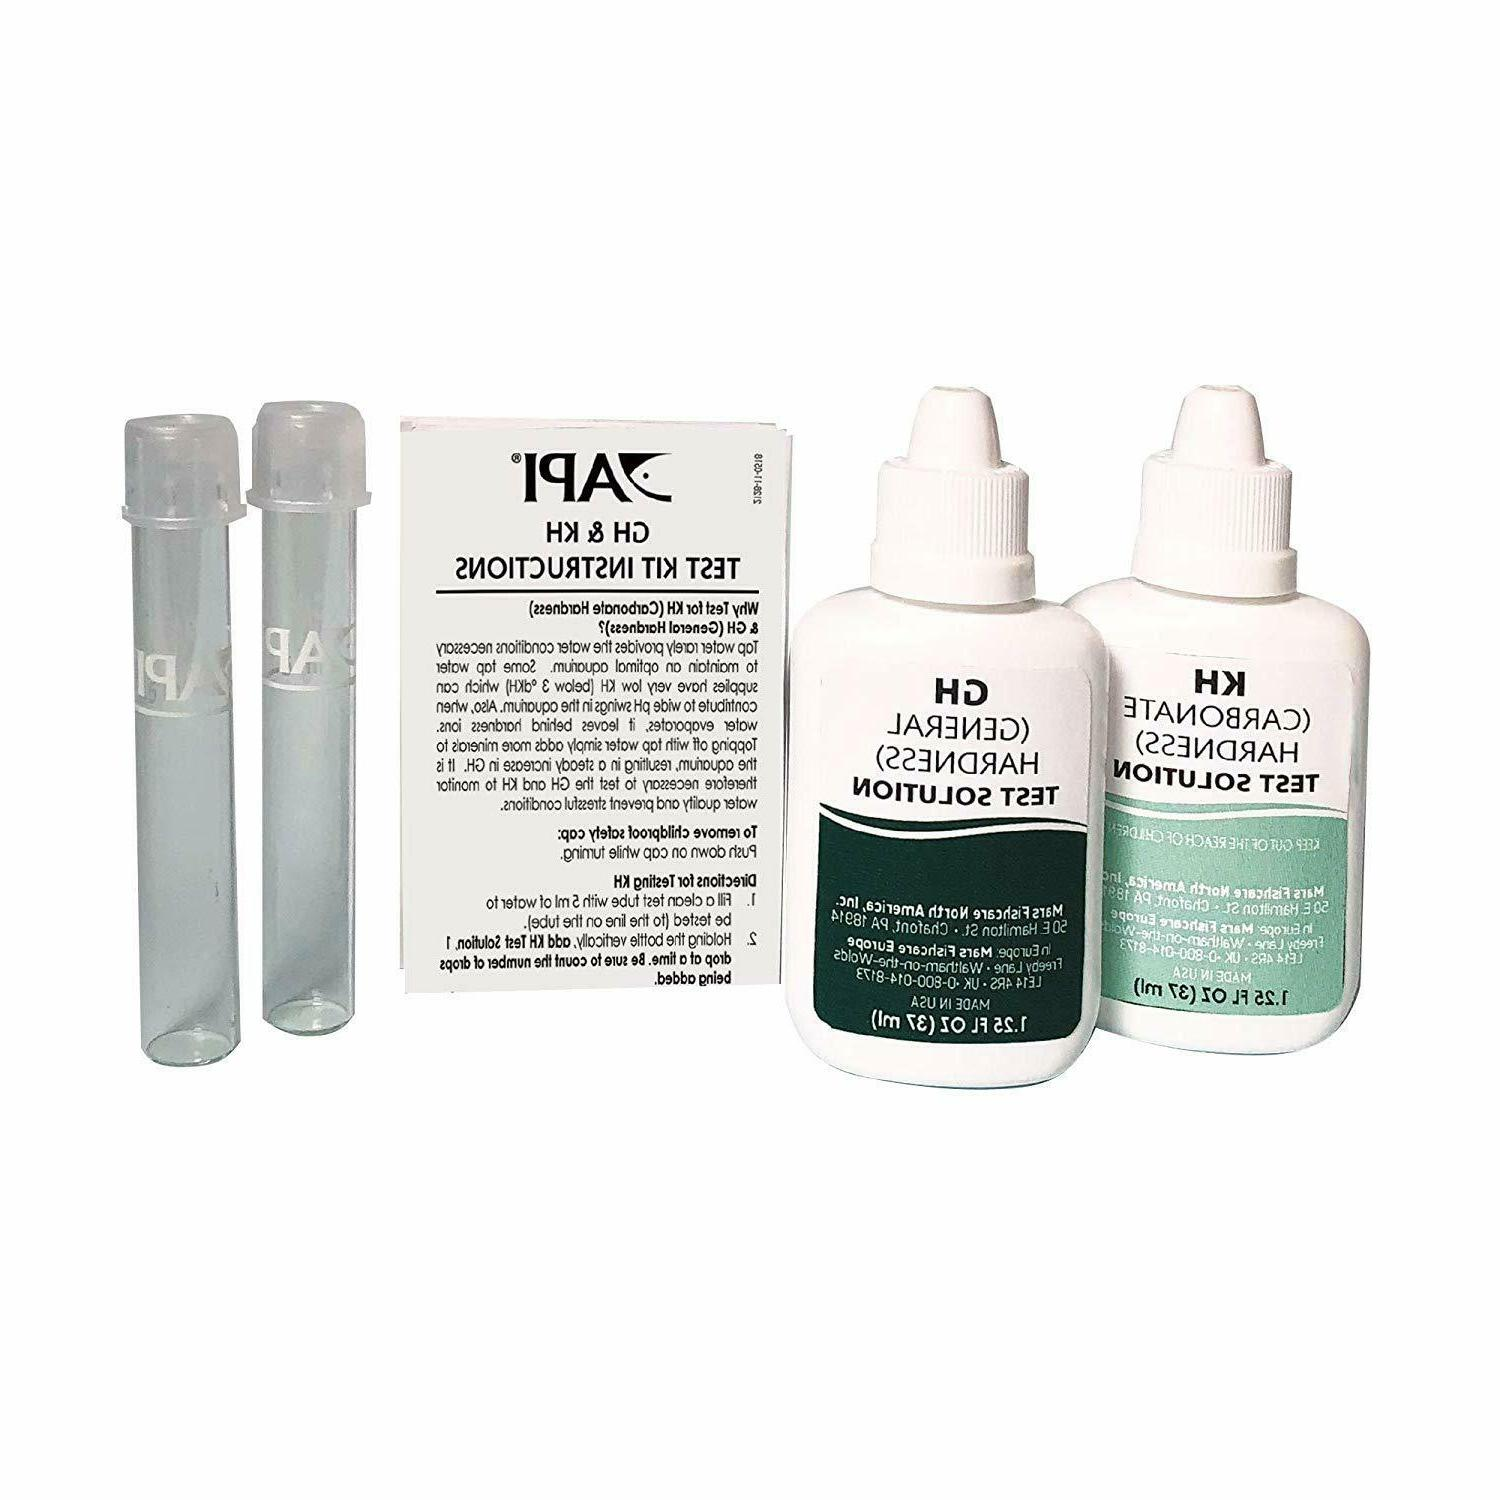 KH and Water Test Kit